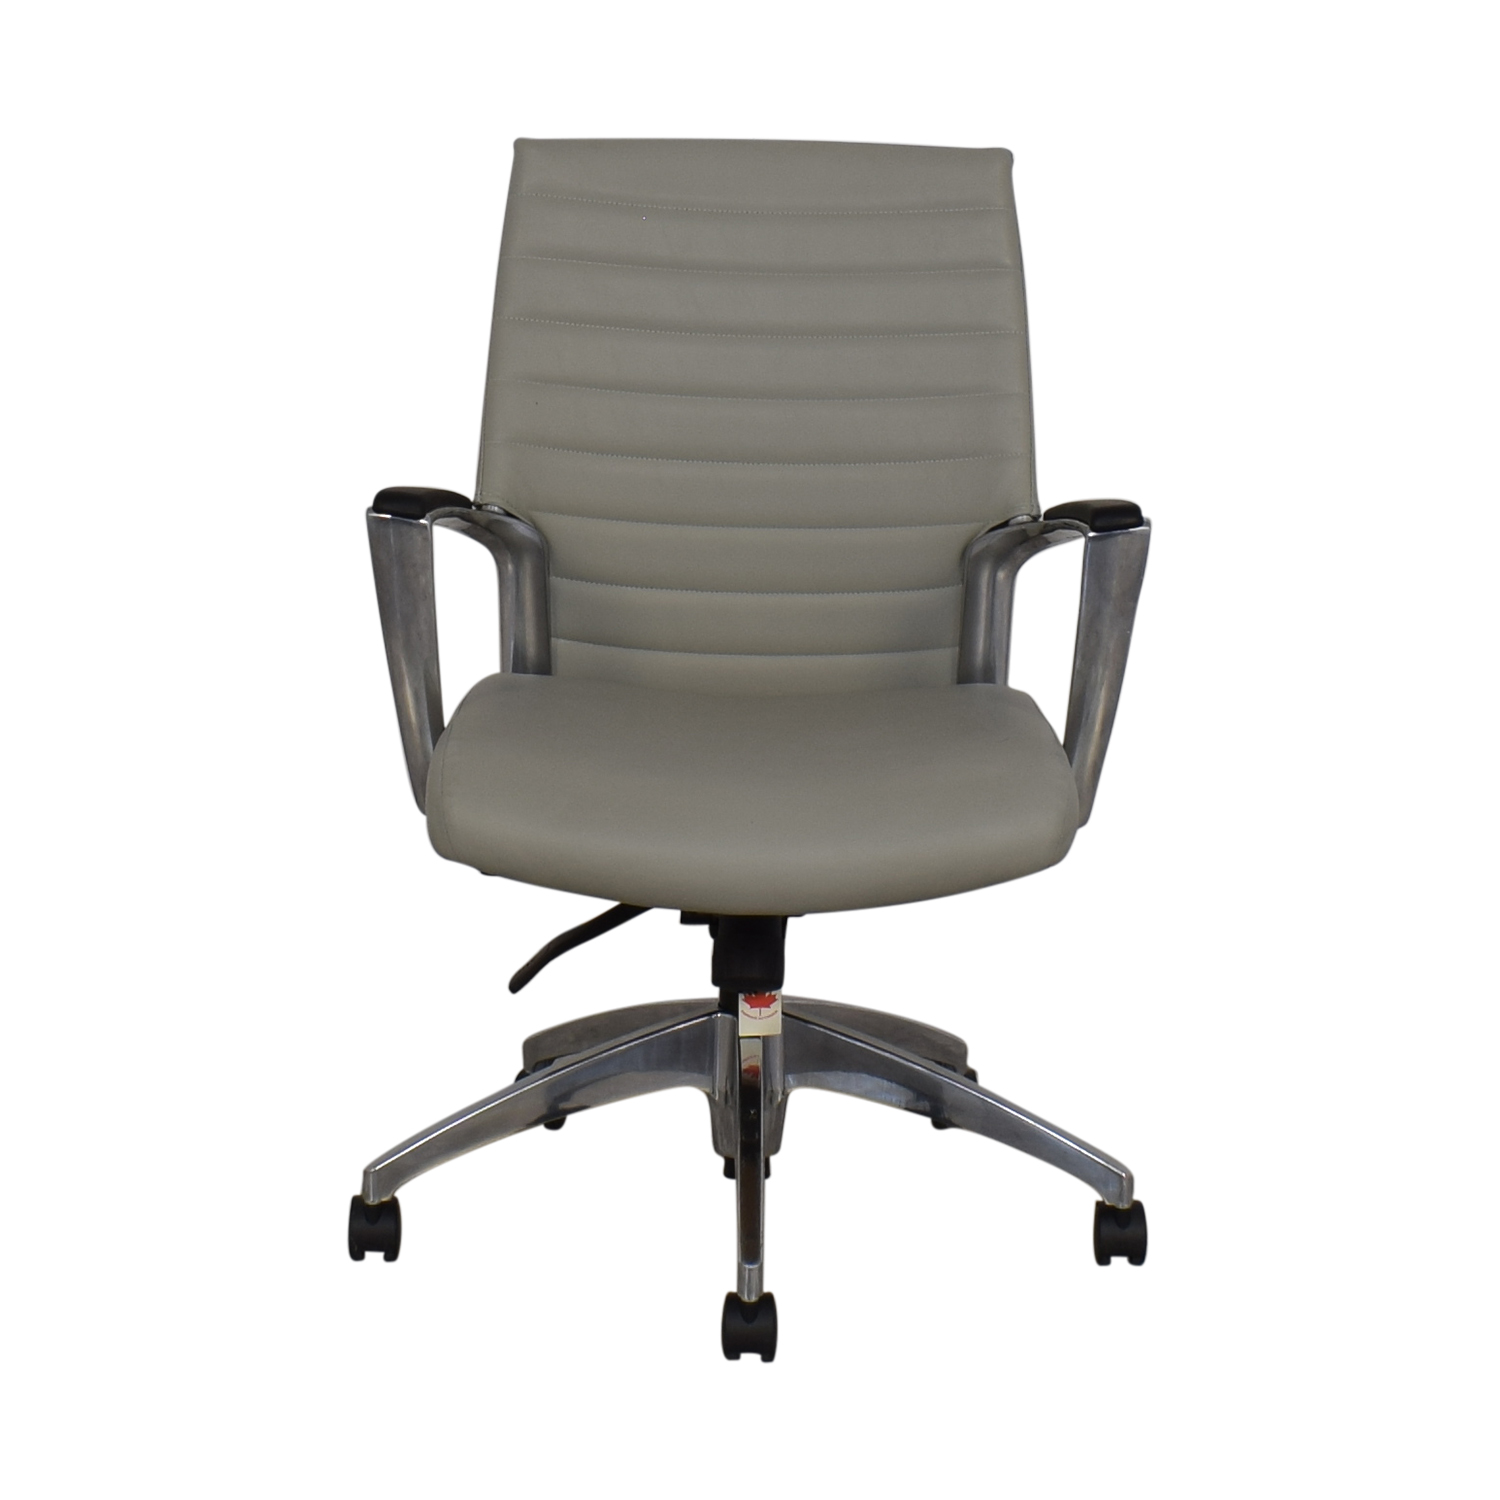 Global Global Accord Upholstered Medium Back Tilter Chair on sale